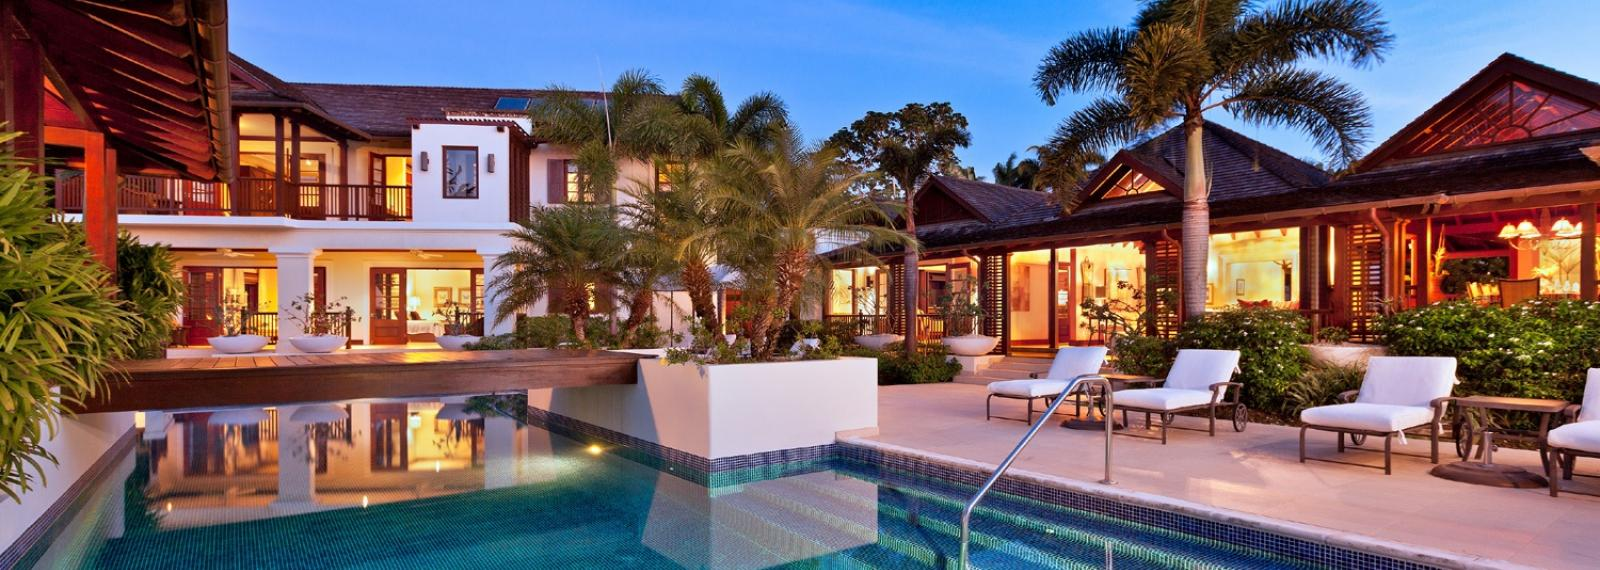 Villa Alila - Sandy Lane Estate - 10% OFF YOUR ENTIRE STAY OF 7 NIGHTS OR MORE